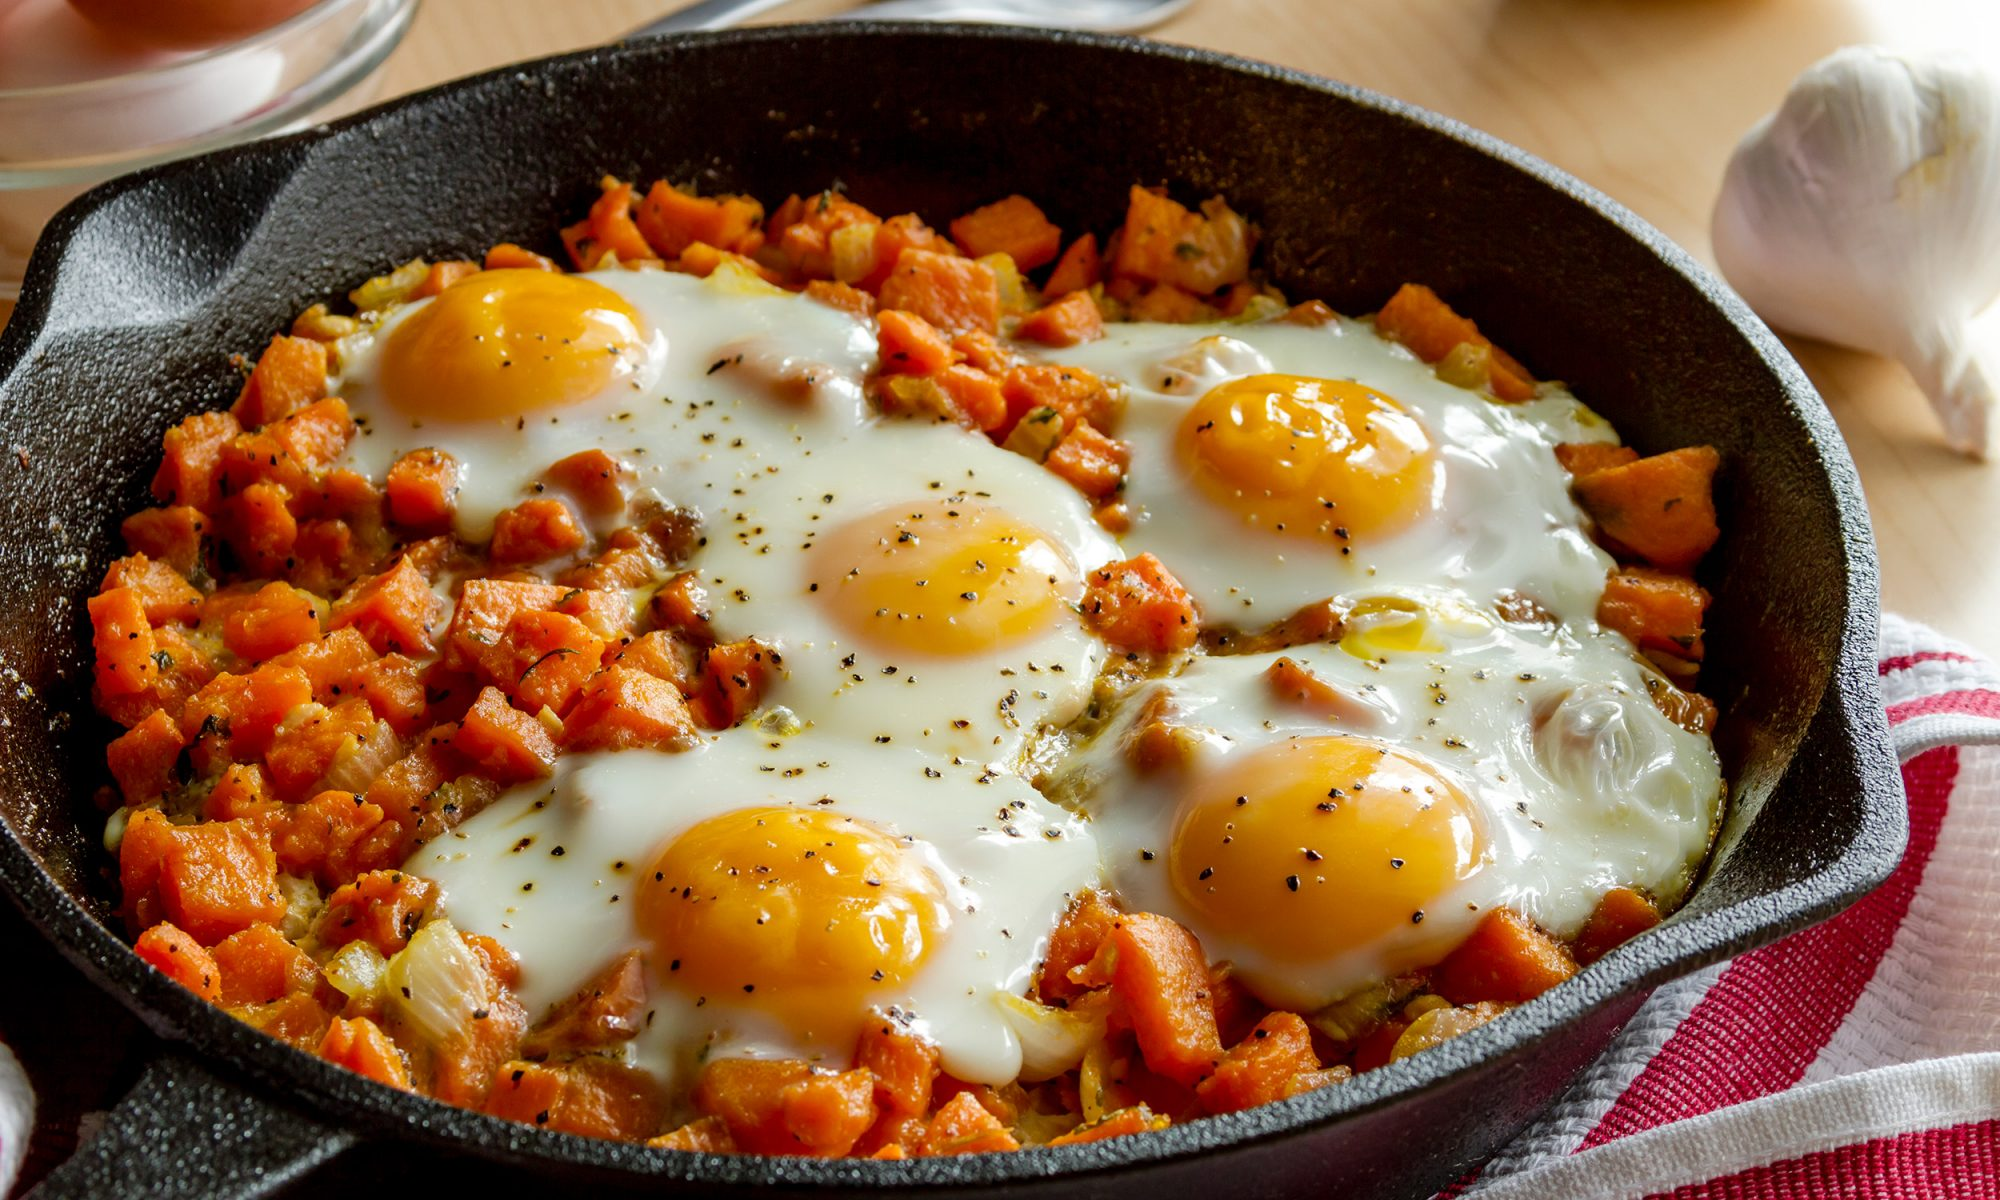 EC: 7 Whole30 Breakfasts to Make in 25 Minutes or Less